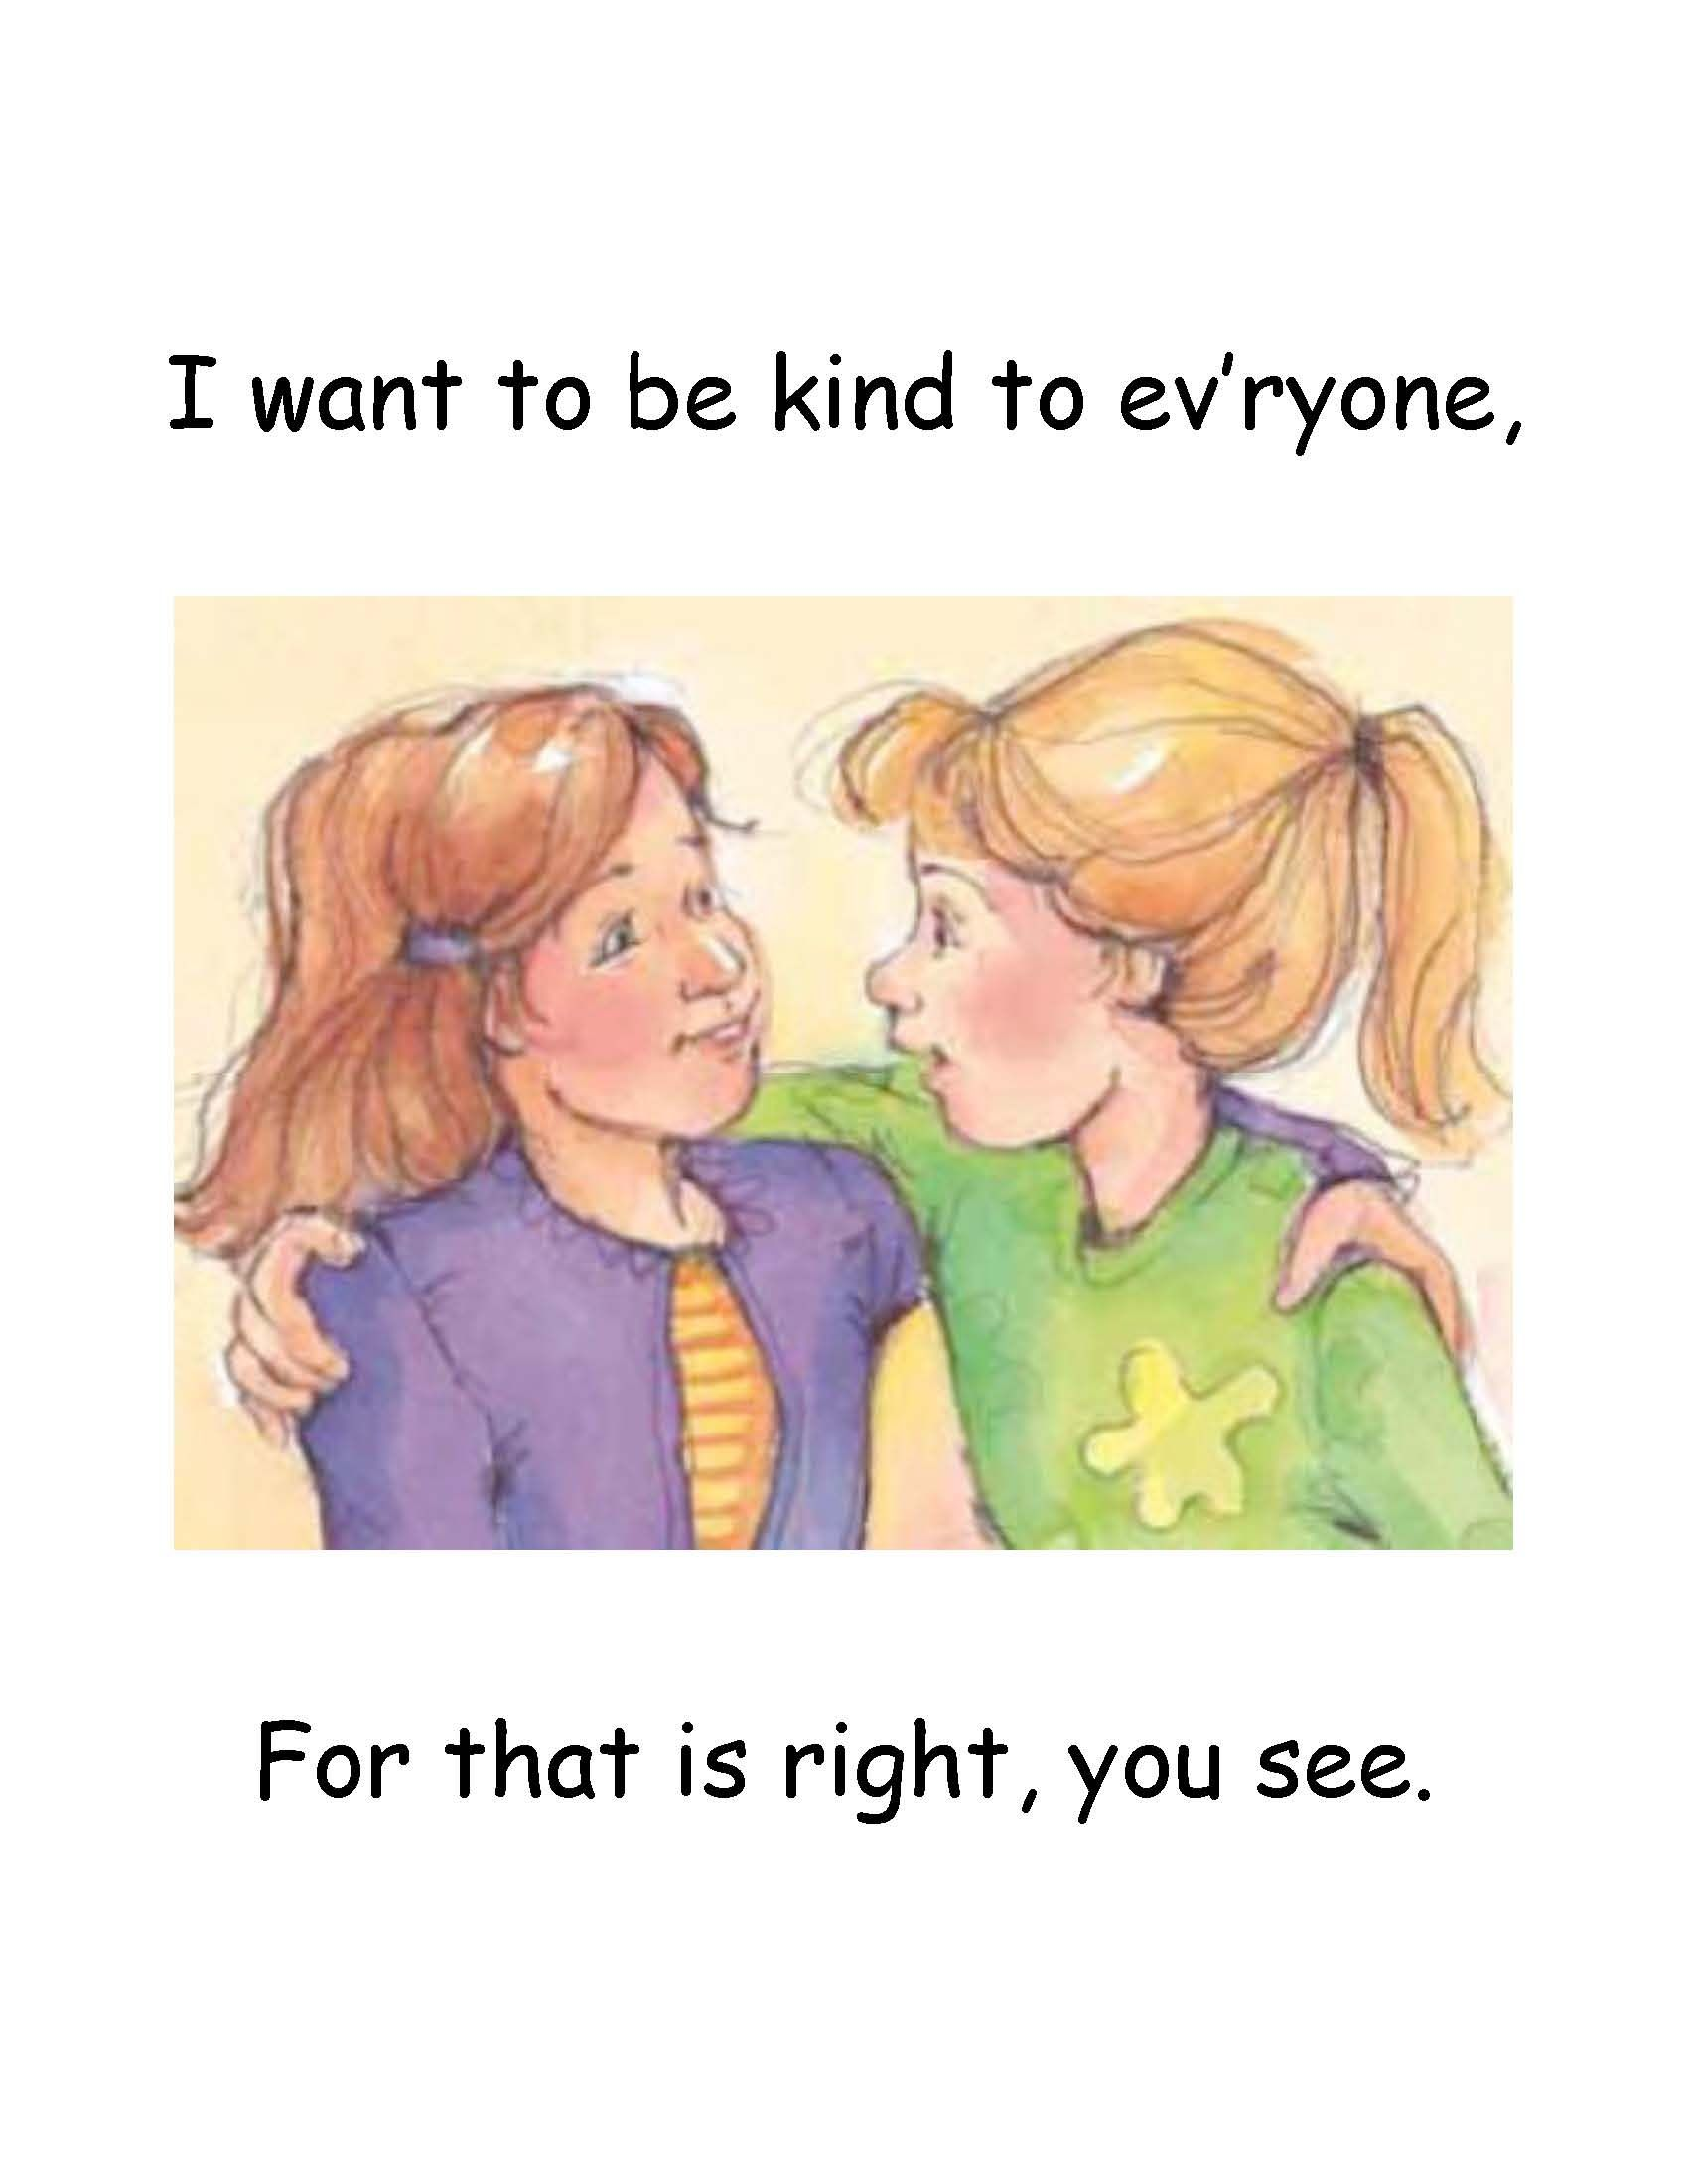 Kindness Begins with Me flip chart